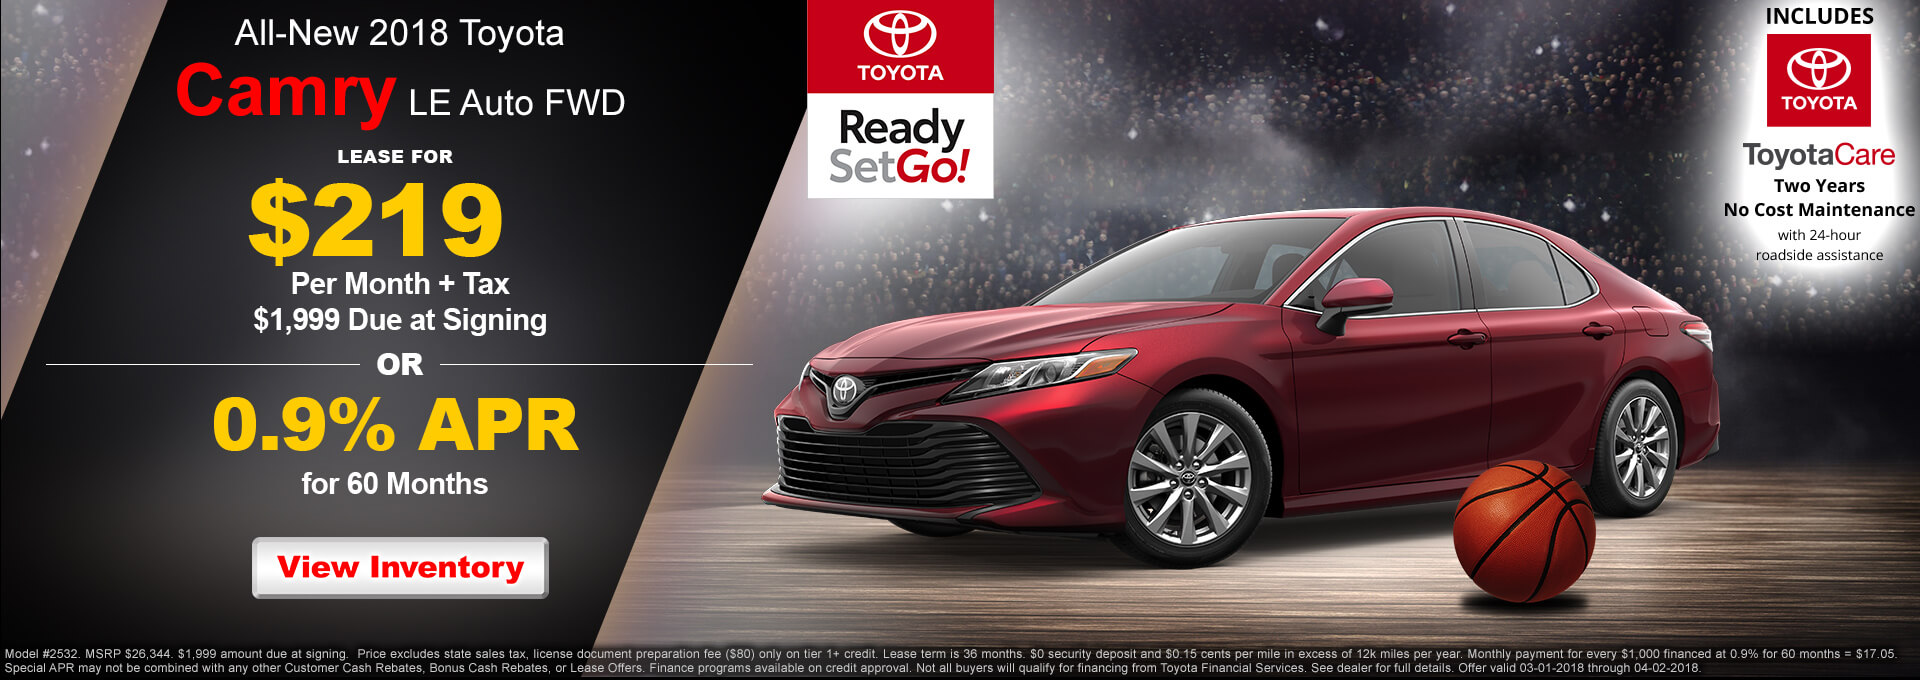 Camry New